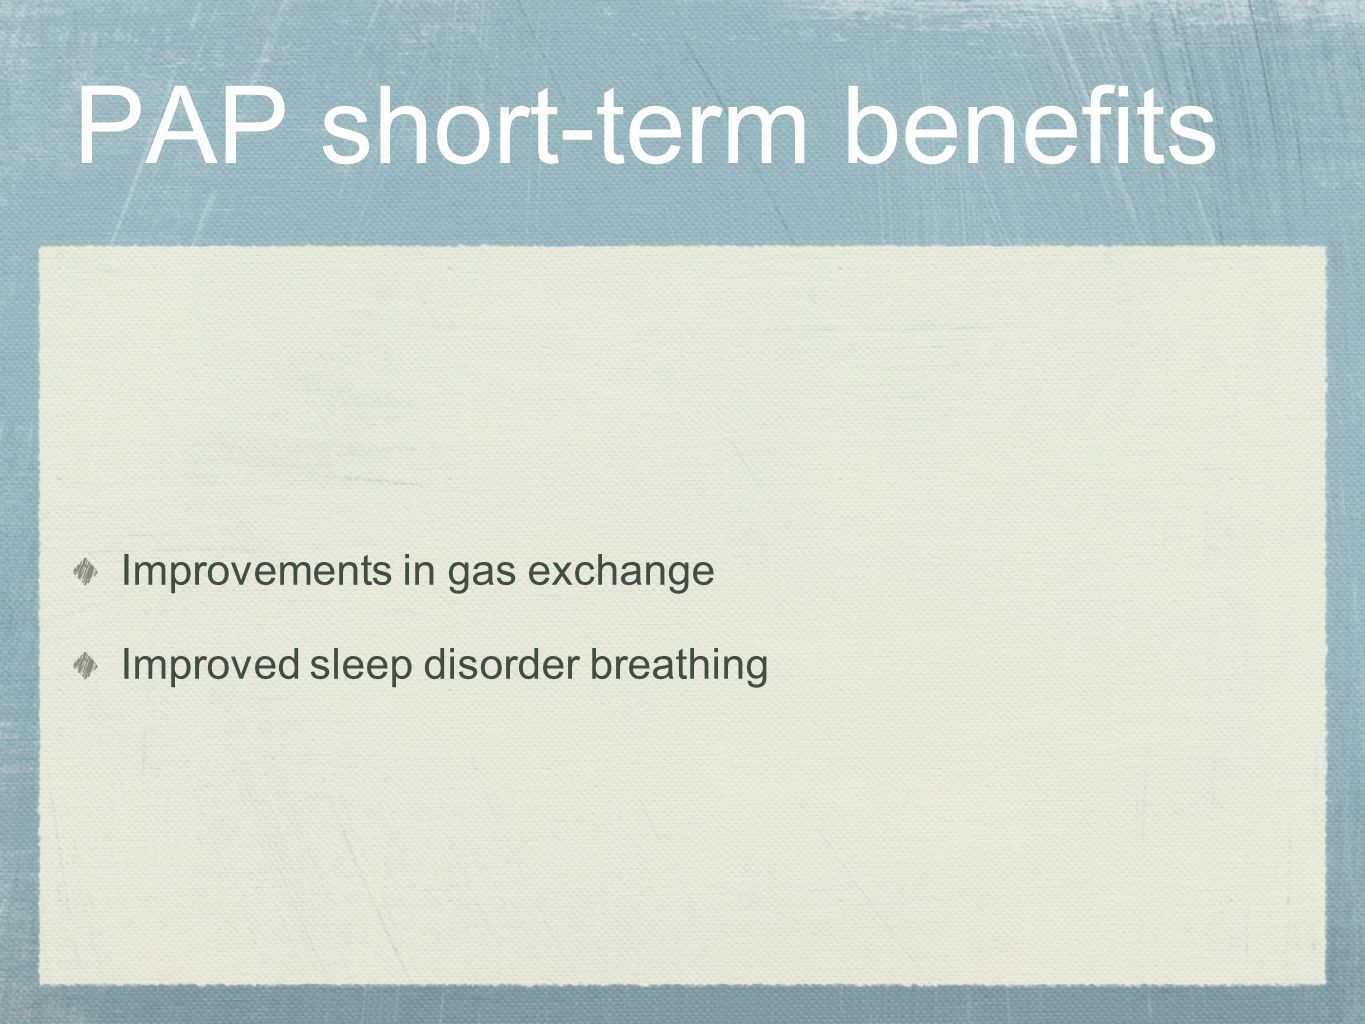 PAP short-term benefits